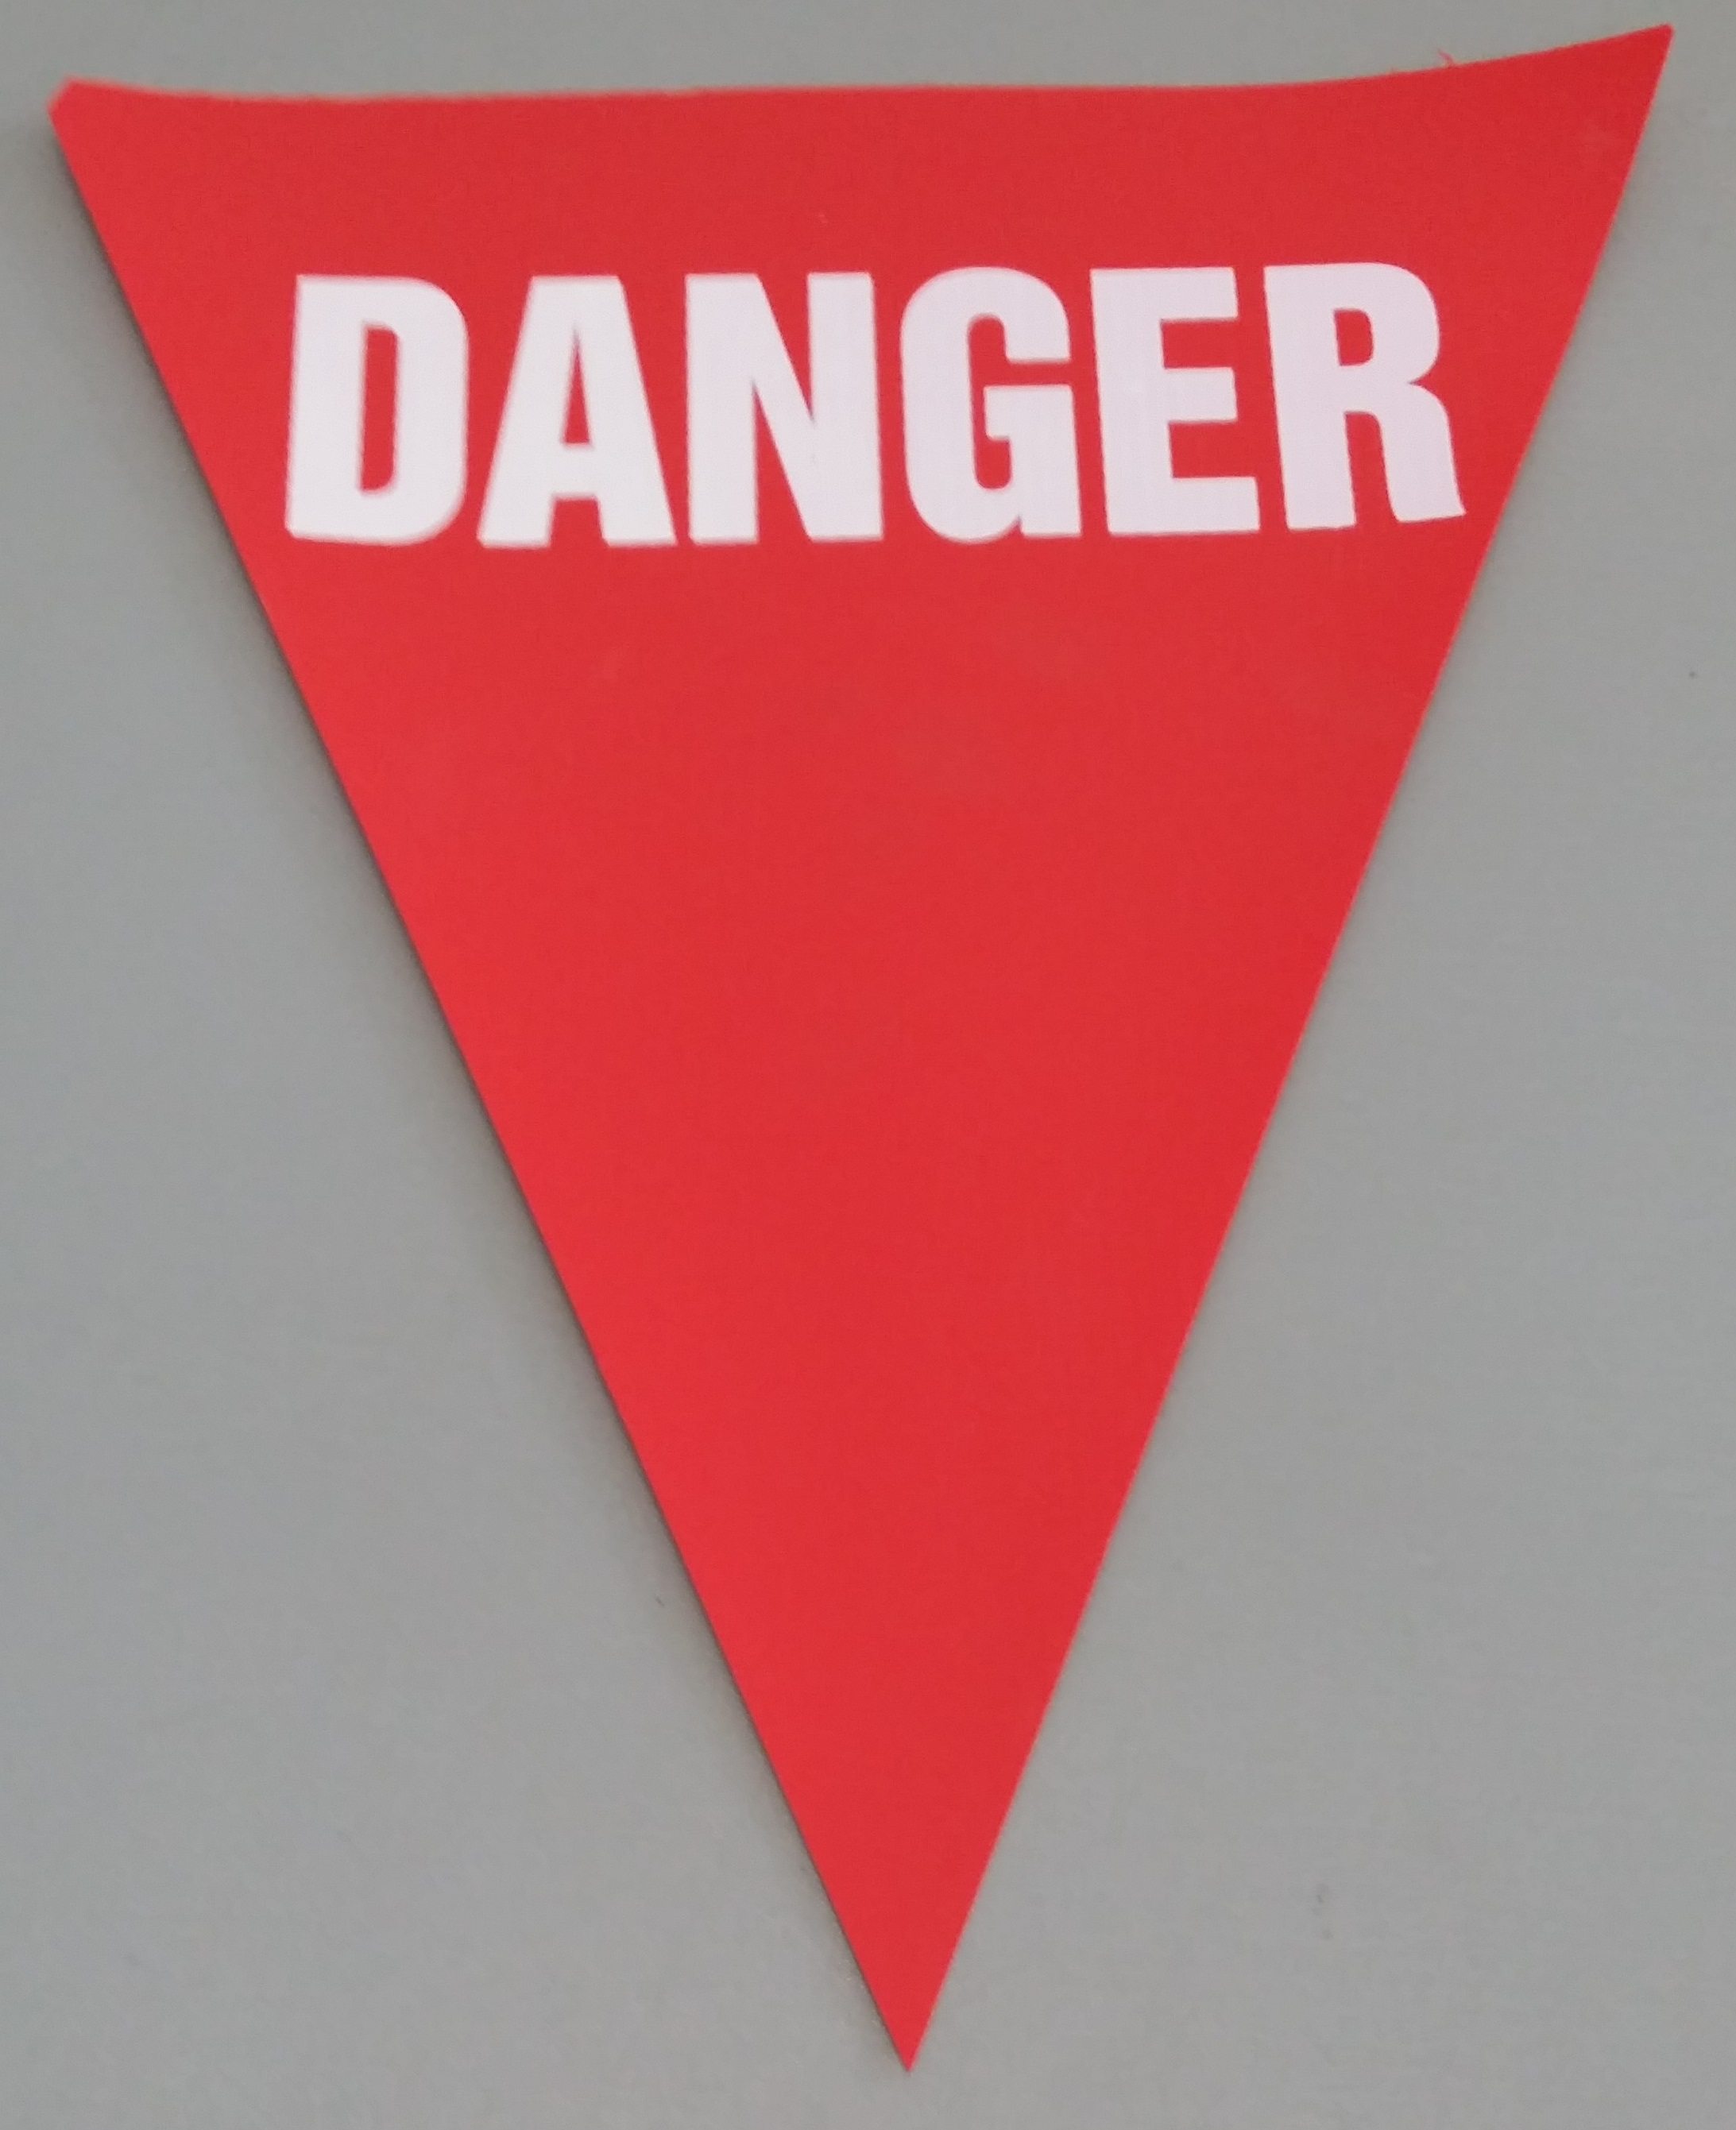 Danger (red with white print)